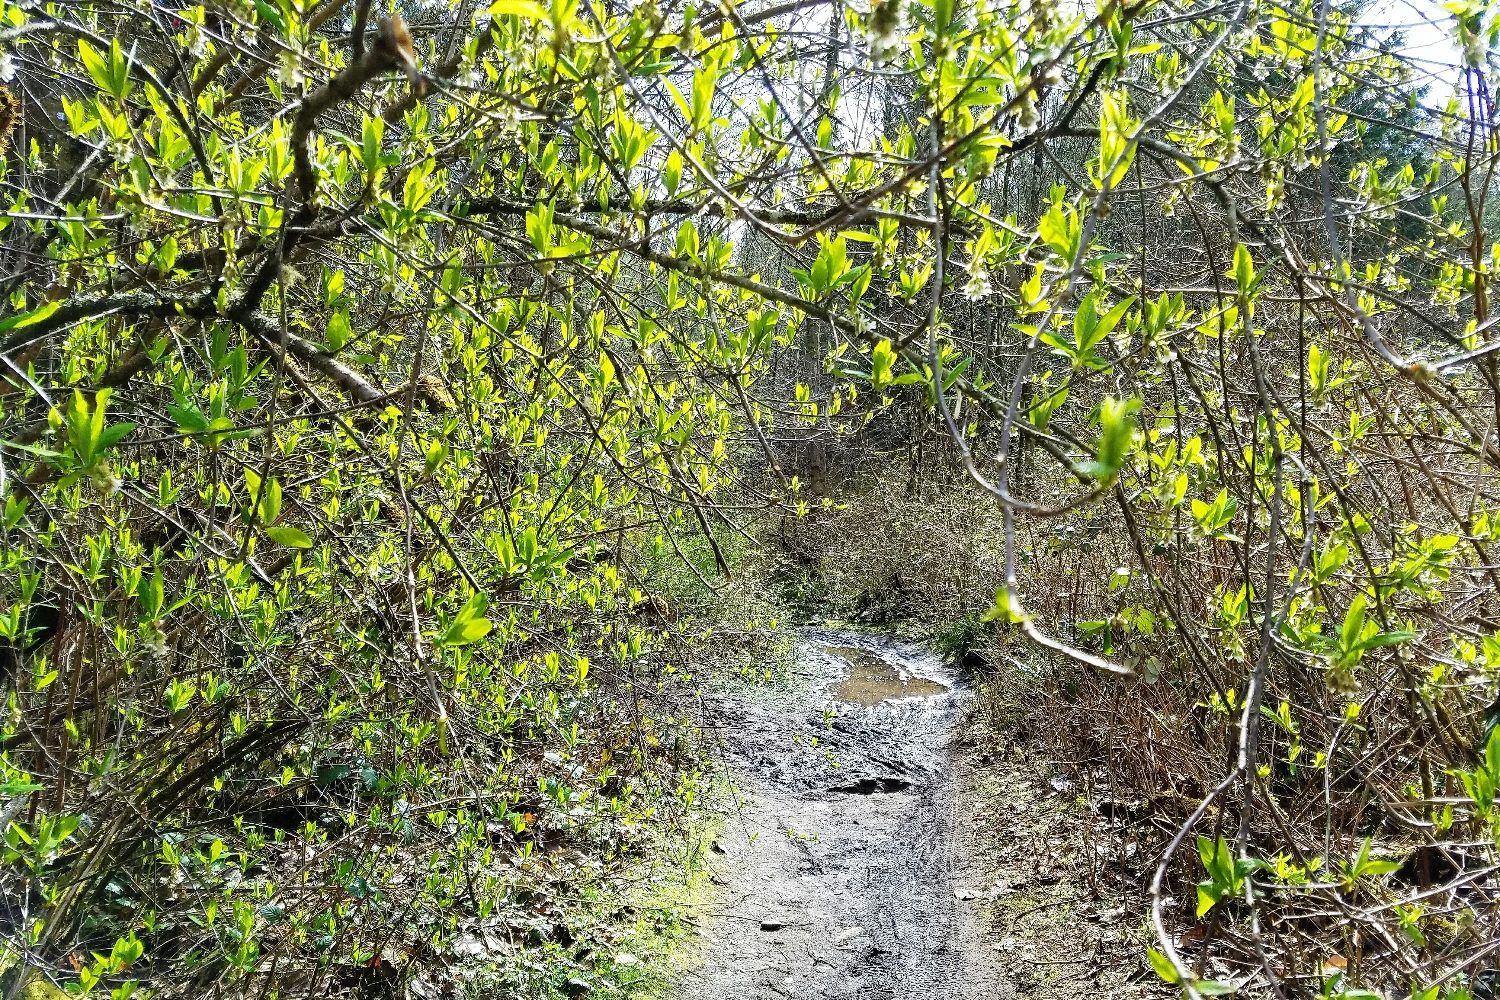 Spring trails in the PNW: tons of green and tons of mud!